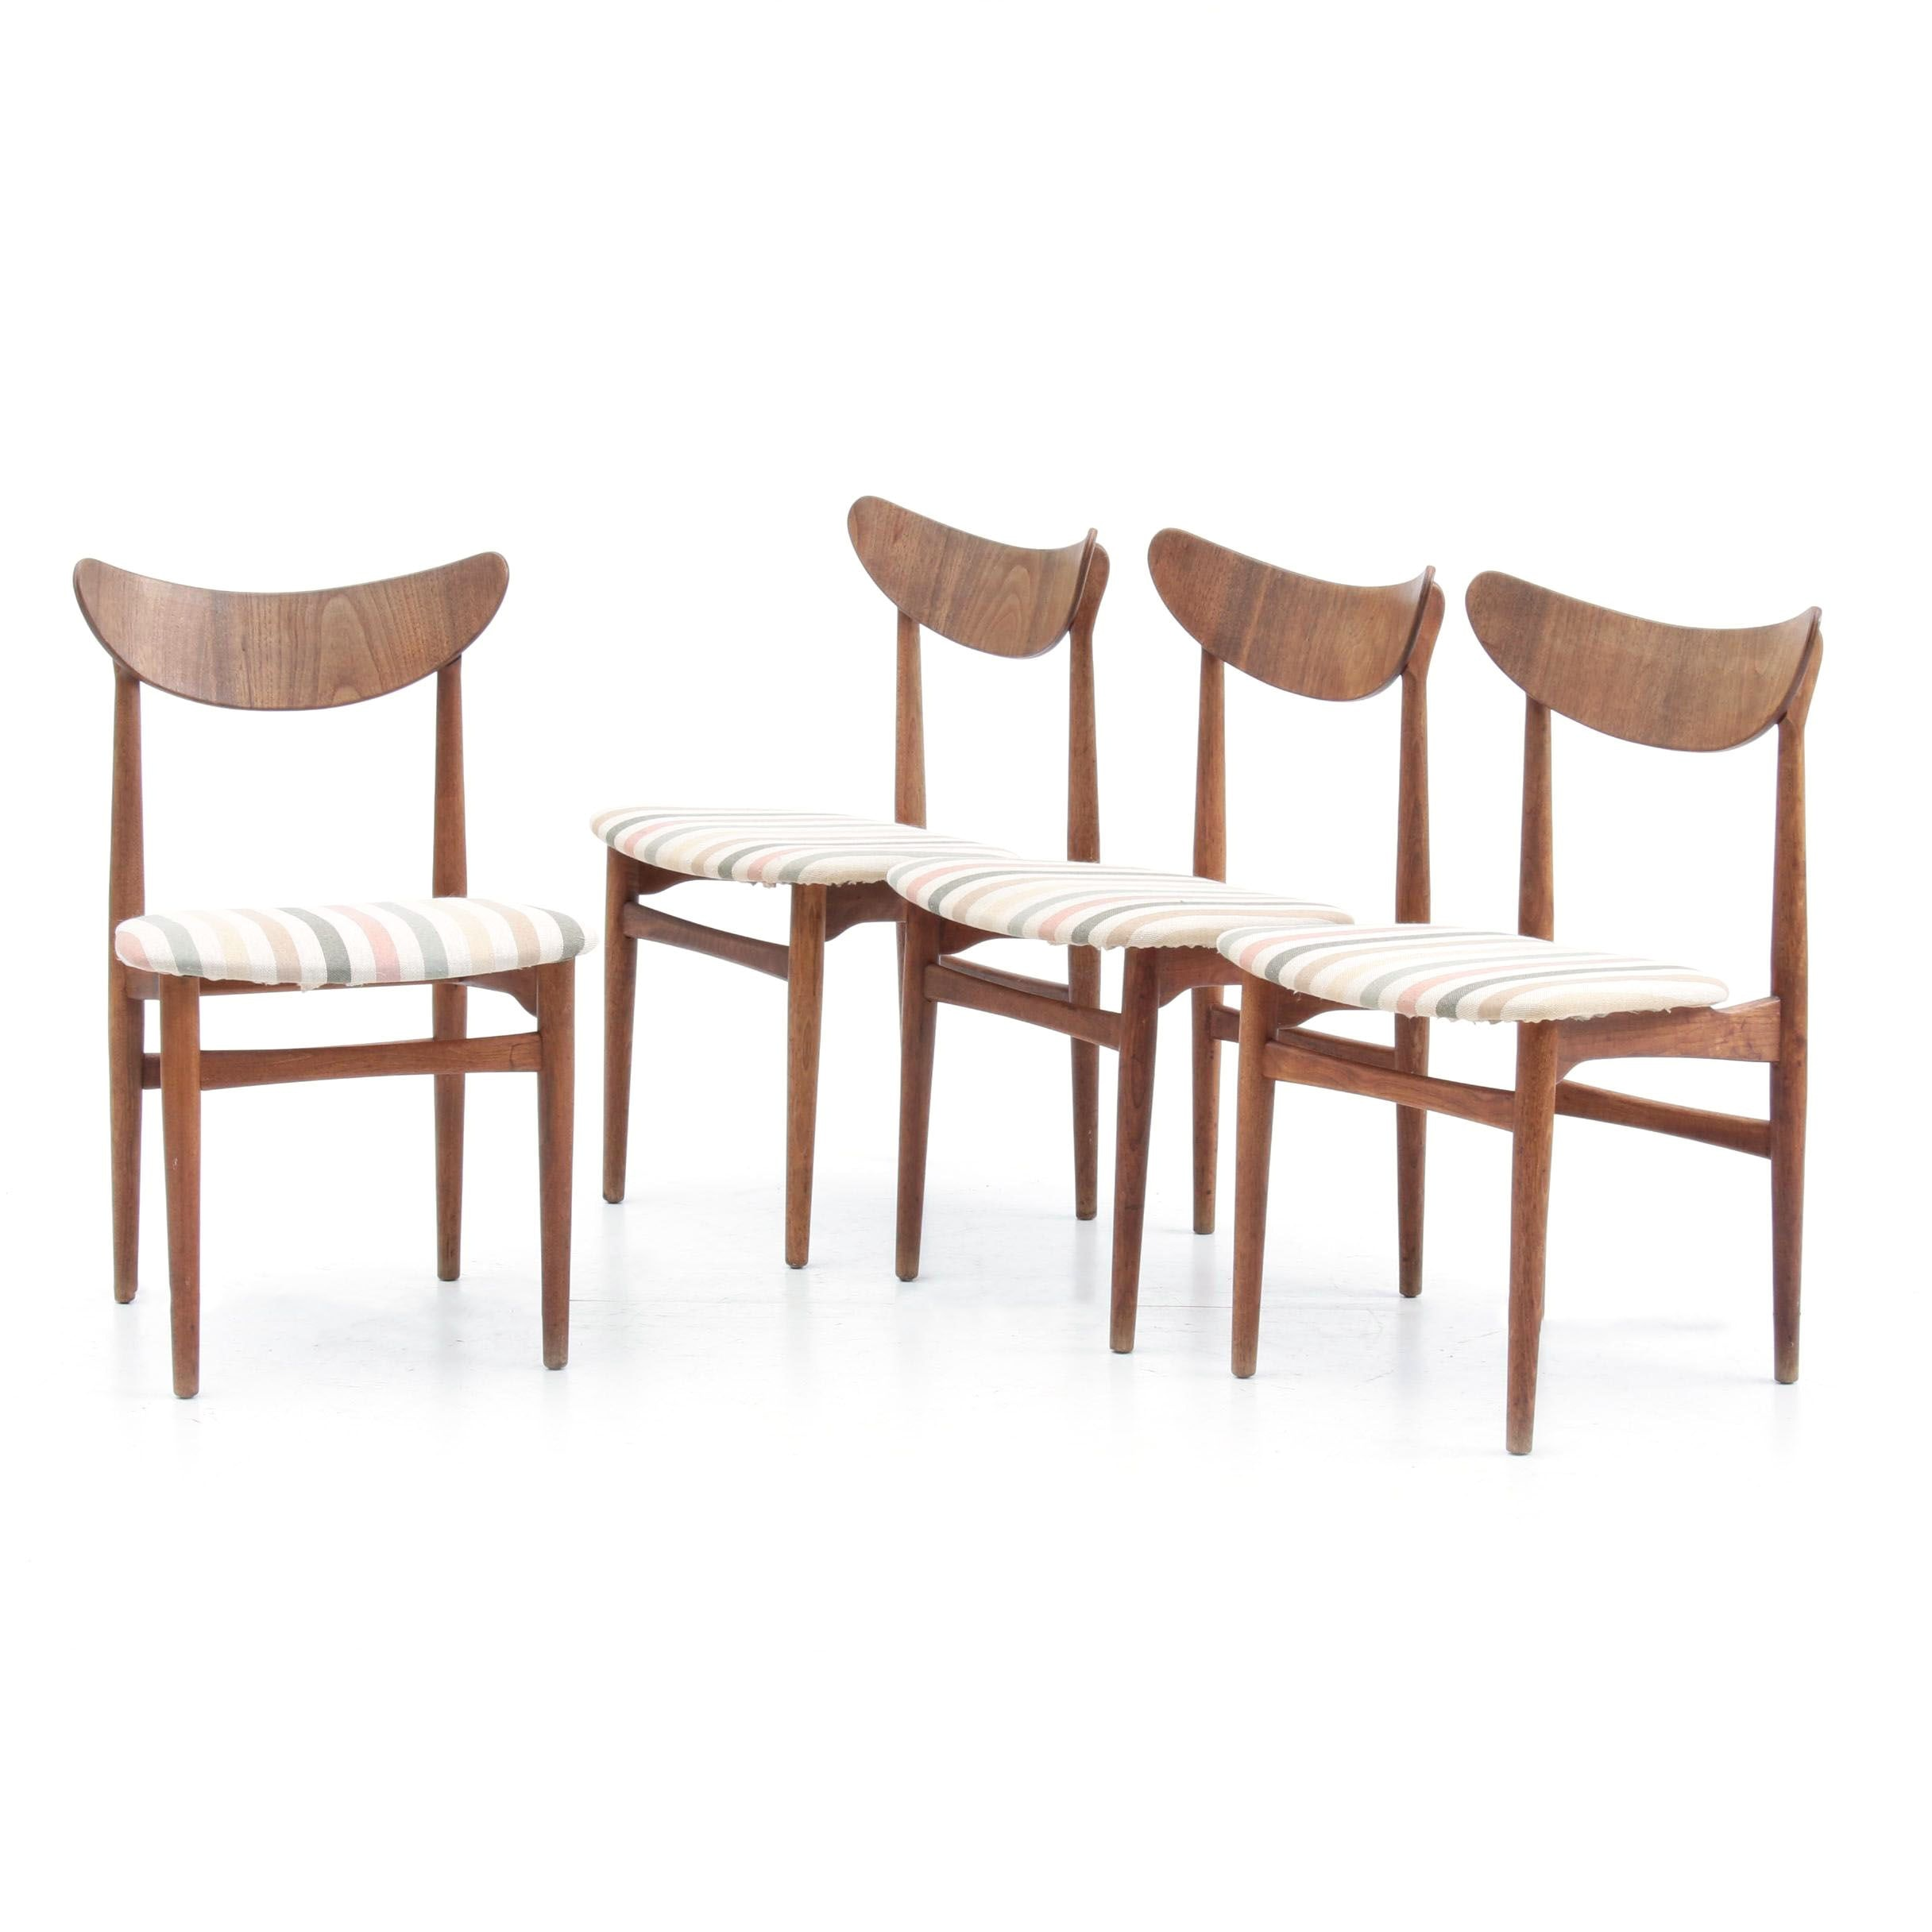 Four Mid Century Style Upholstered Side Chairs in Walnut